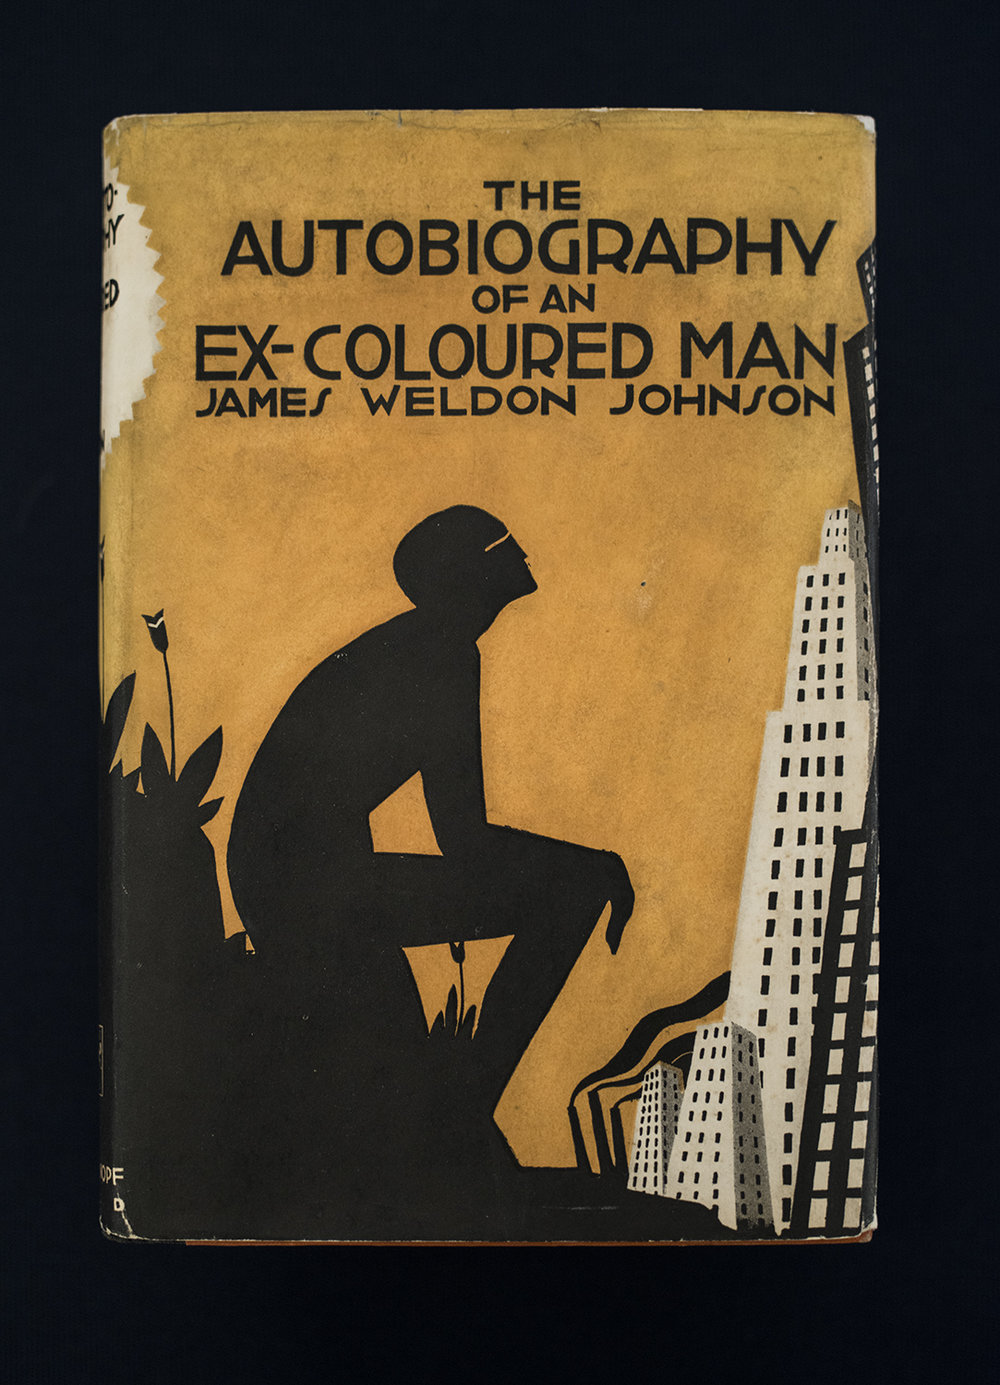 The Autobiography of an Ex-Colored Man, 1927, Published by Sherman, French, and Company. James Weldon Johnson (American, b. 1871 - 1938). Dust Jacket: Aaron Douglas (American, b. 1899 - 1979).